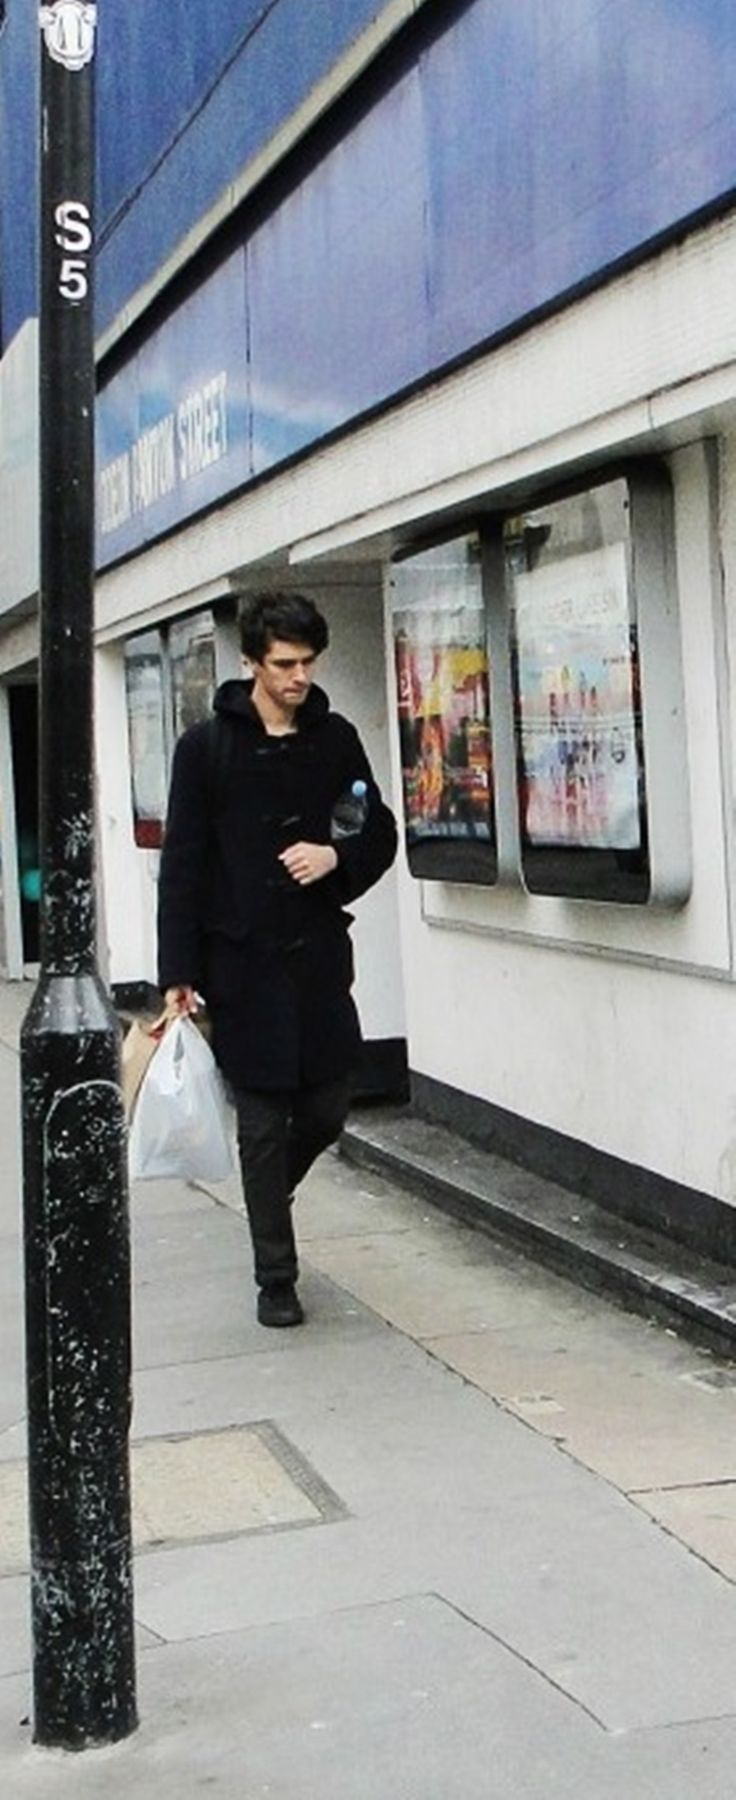 Ben Whishaw: Flawlessly carrying groceries